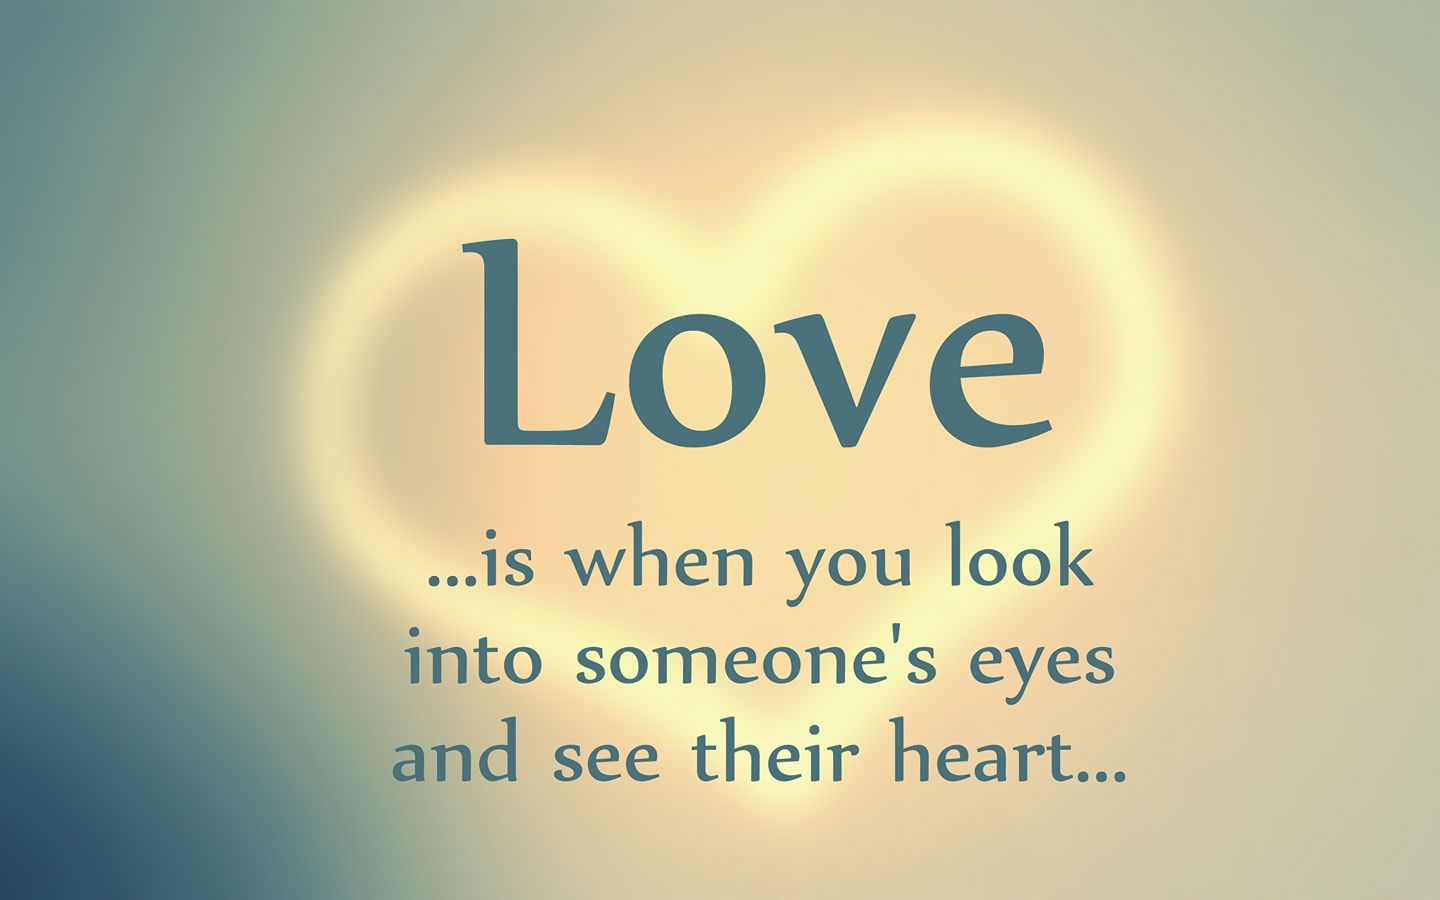 LOVE is when you look into someone's eyes